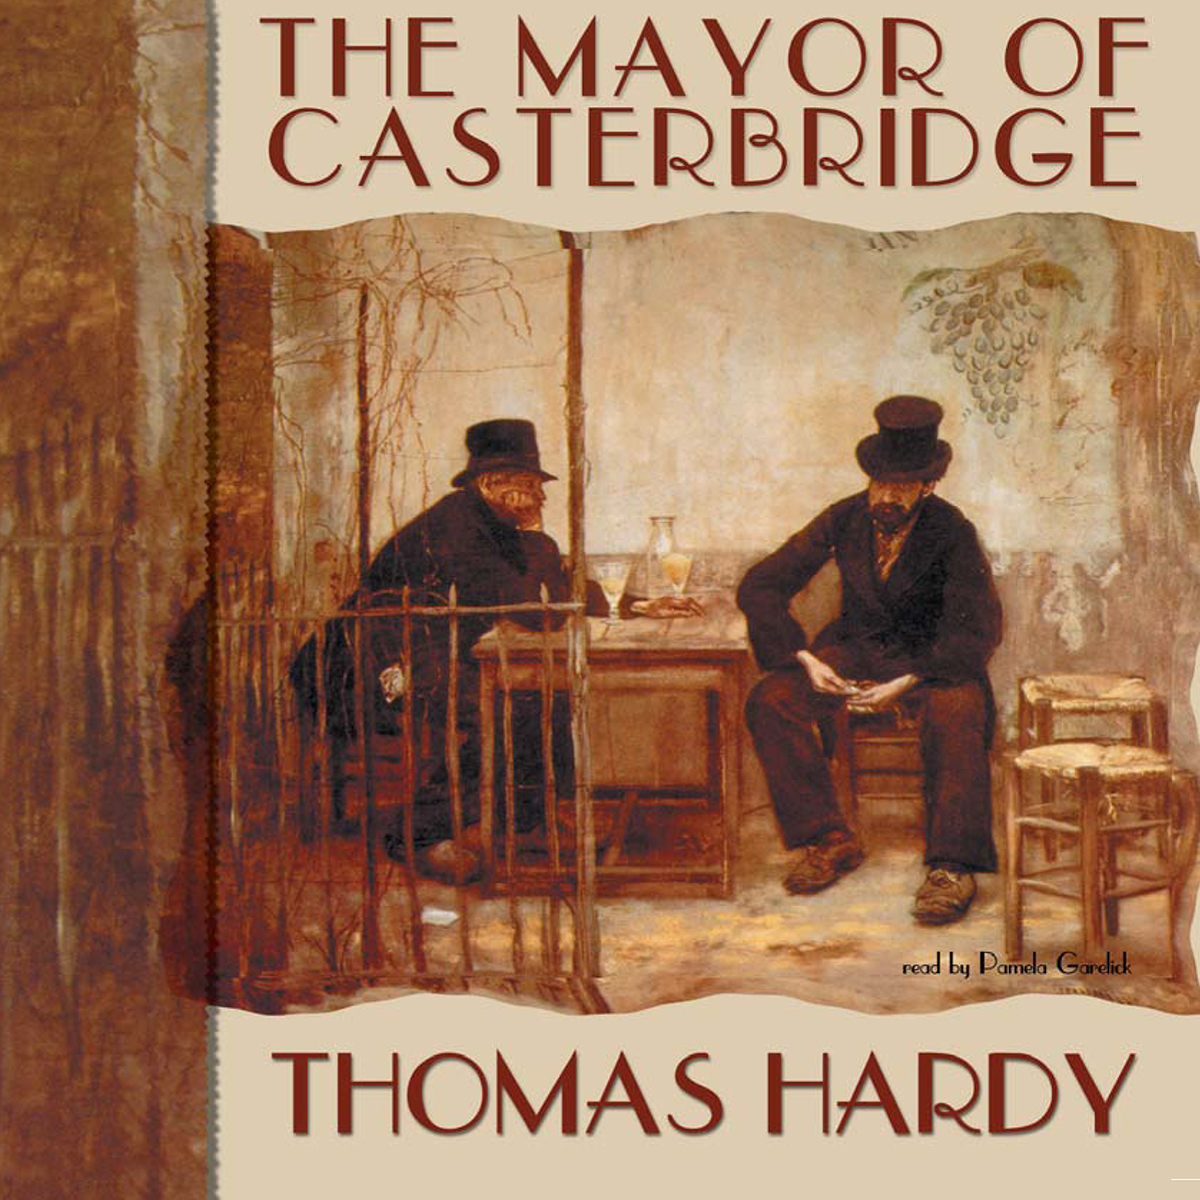 an analysis of thomas hardys novel the mayor of casterbridge If you've read thomas hardy's novel, ''the mayor of casterbridge'', find out how much you remember about its story, characters, and themes with.